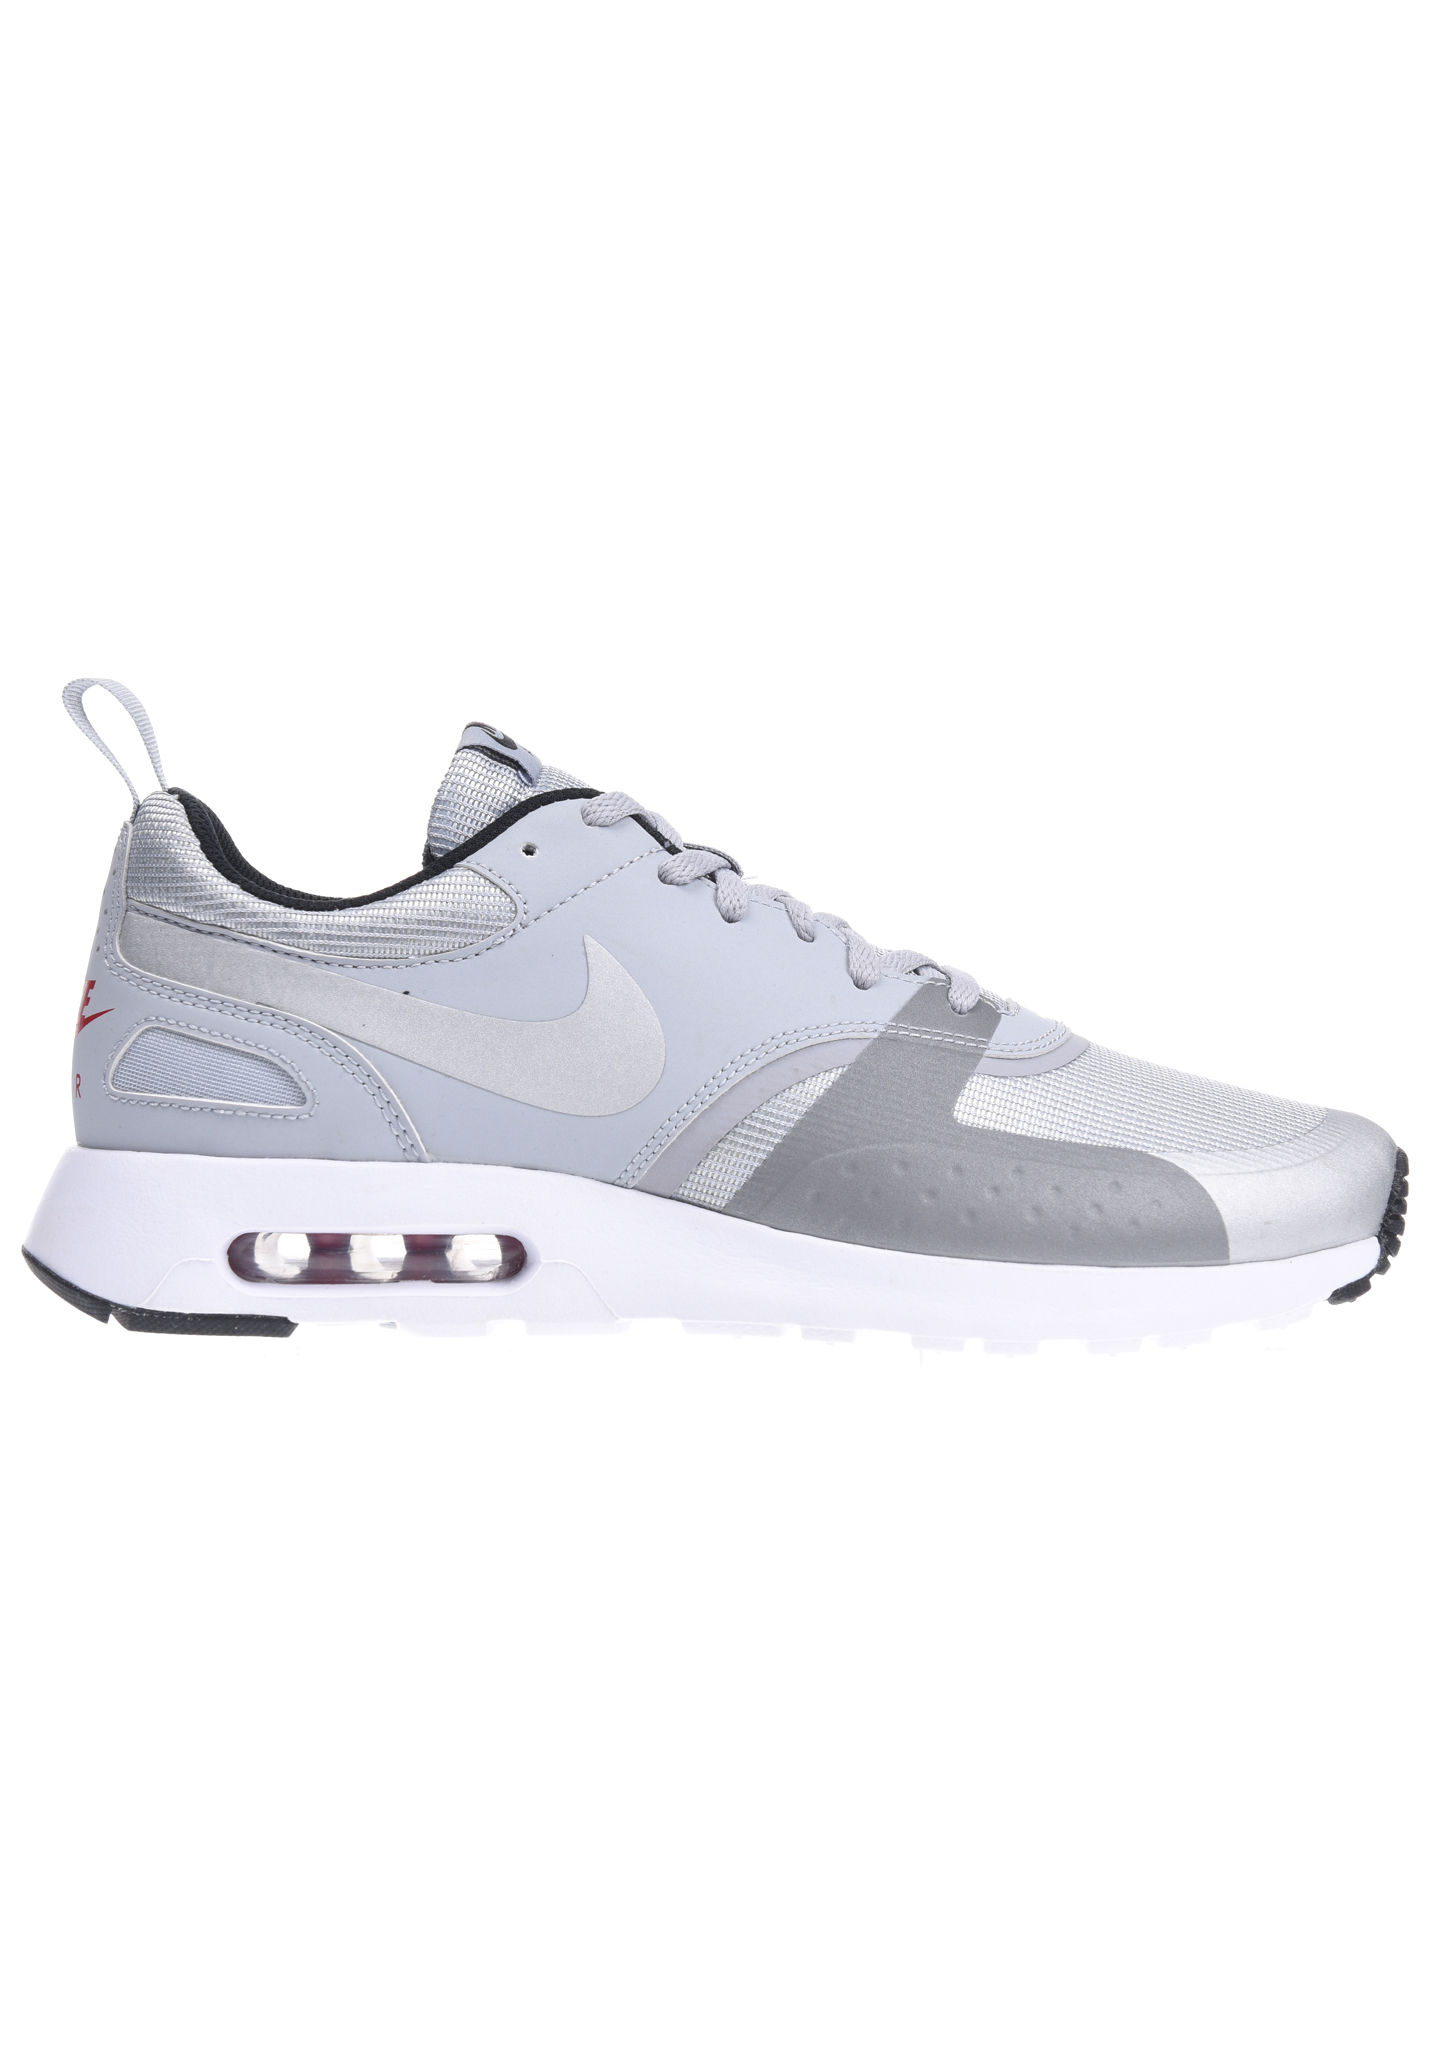 timeless design 6a993 c395d NIKE SPORTSWEAR Air Max Vision Premium - Sneakers voor Heren - Grijs -  Planet Sports